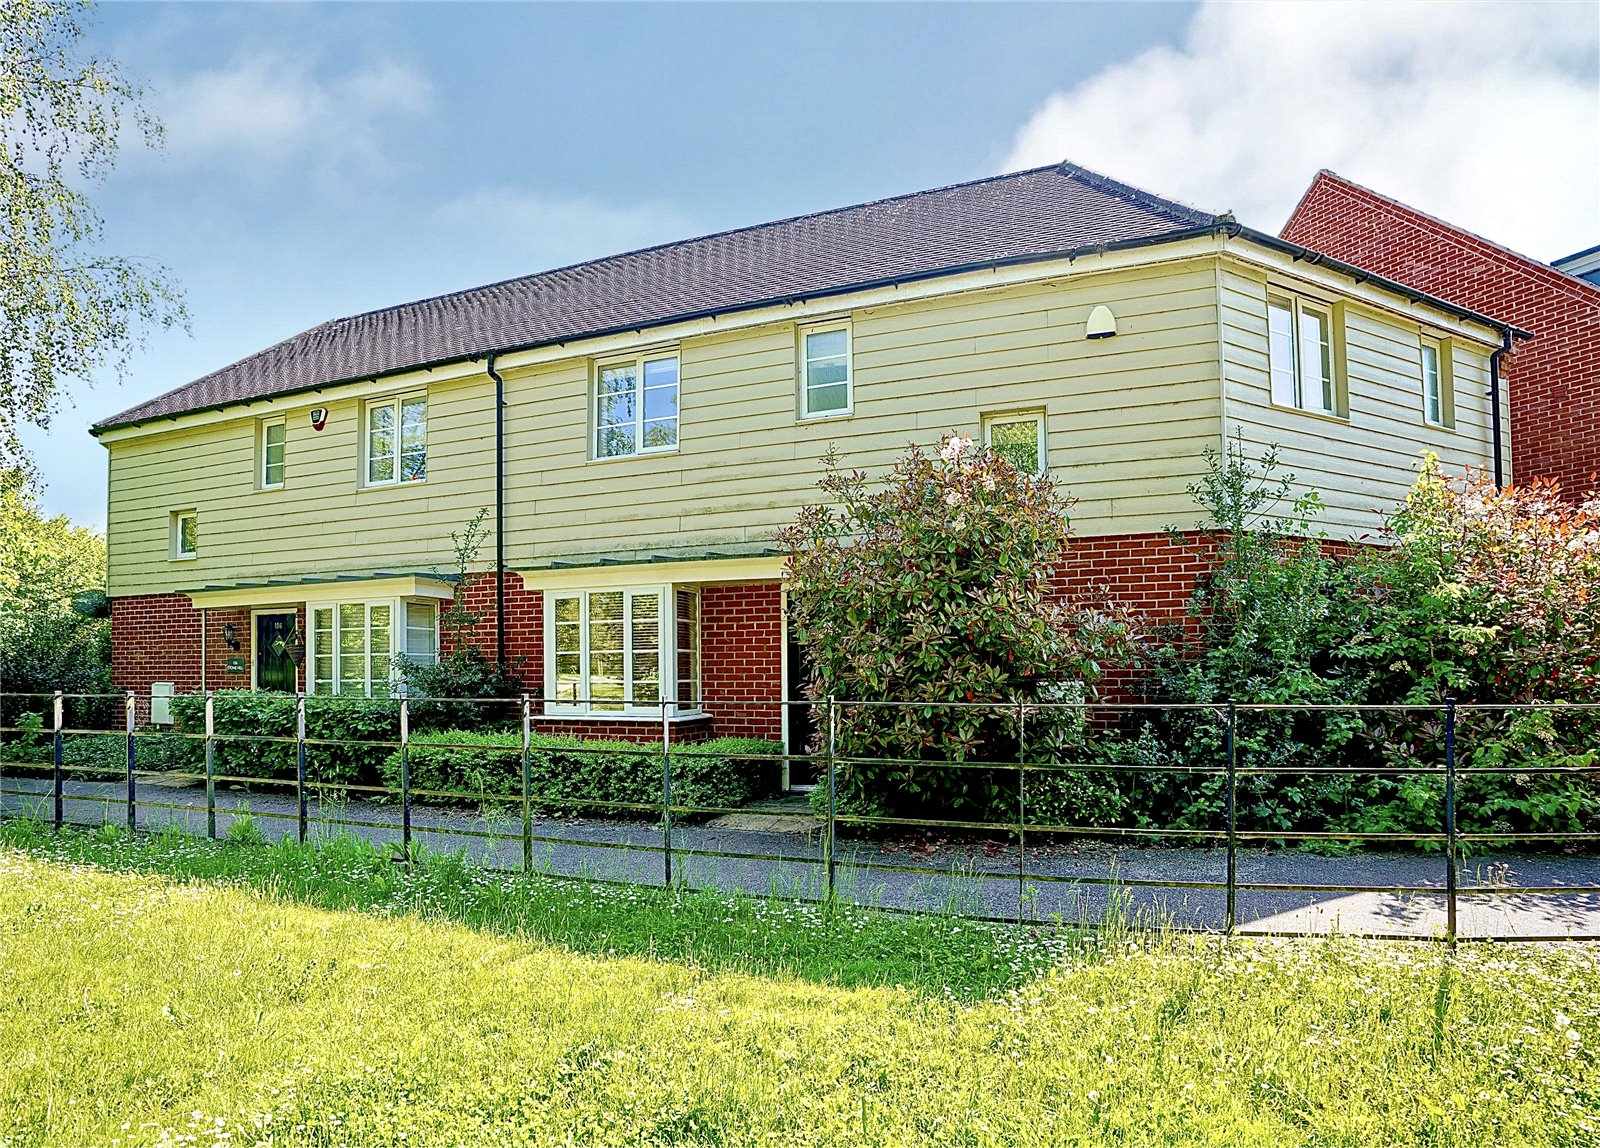 4 bed house for sale in Stone Hill, St Neots, PE19